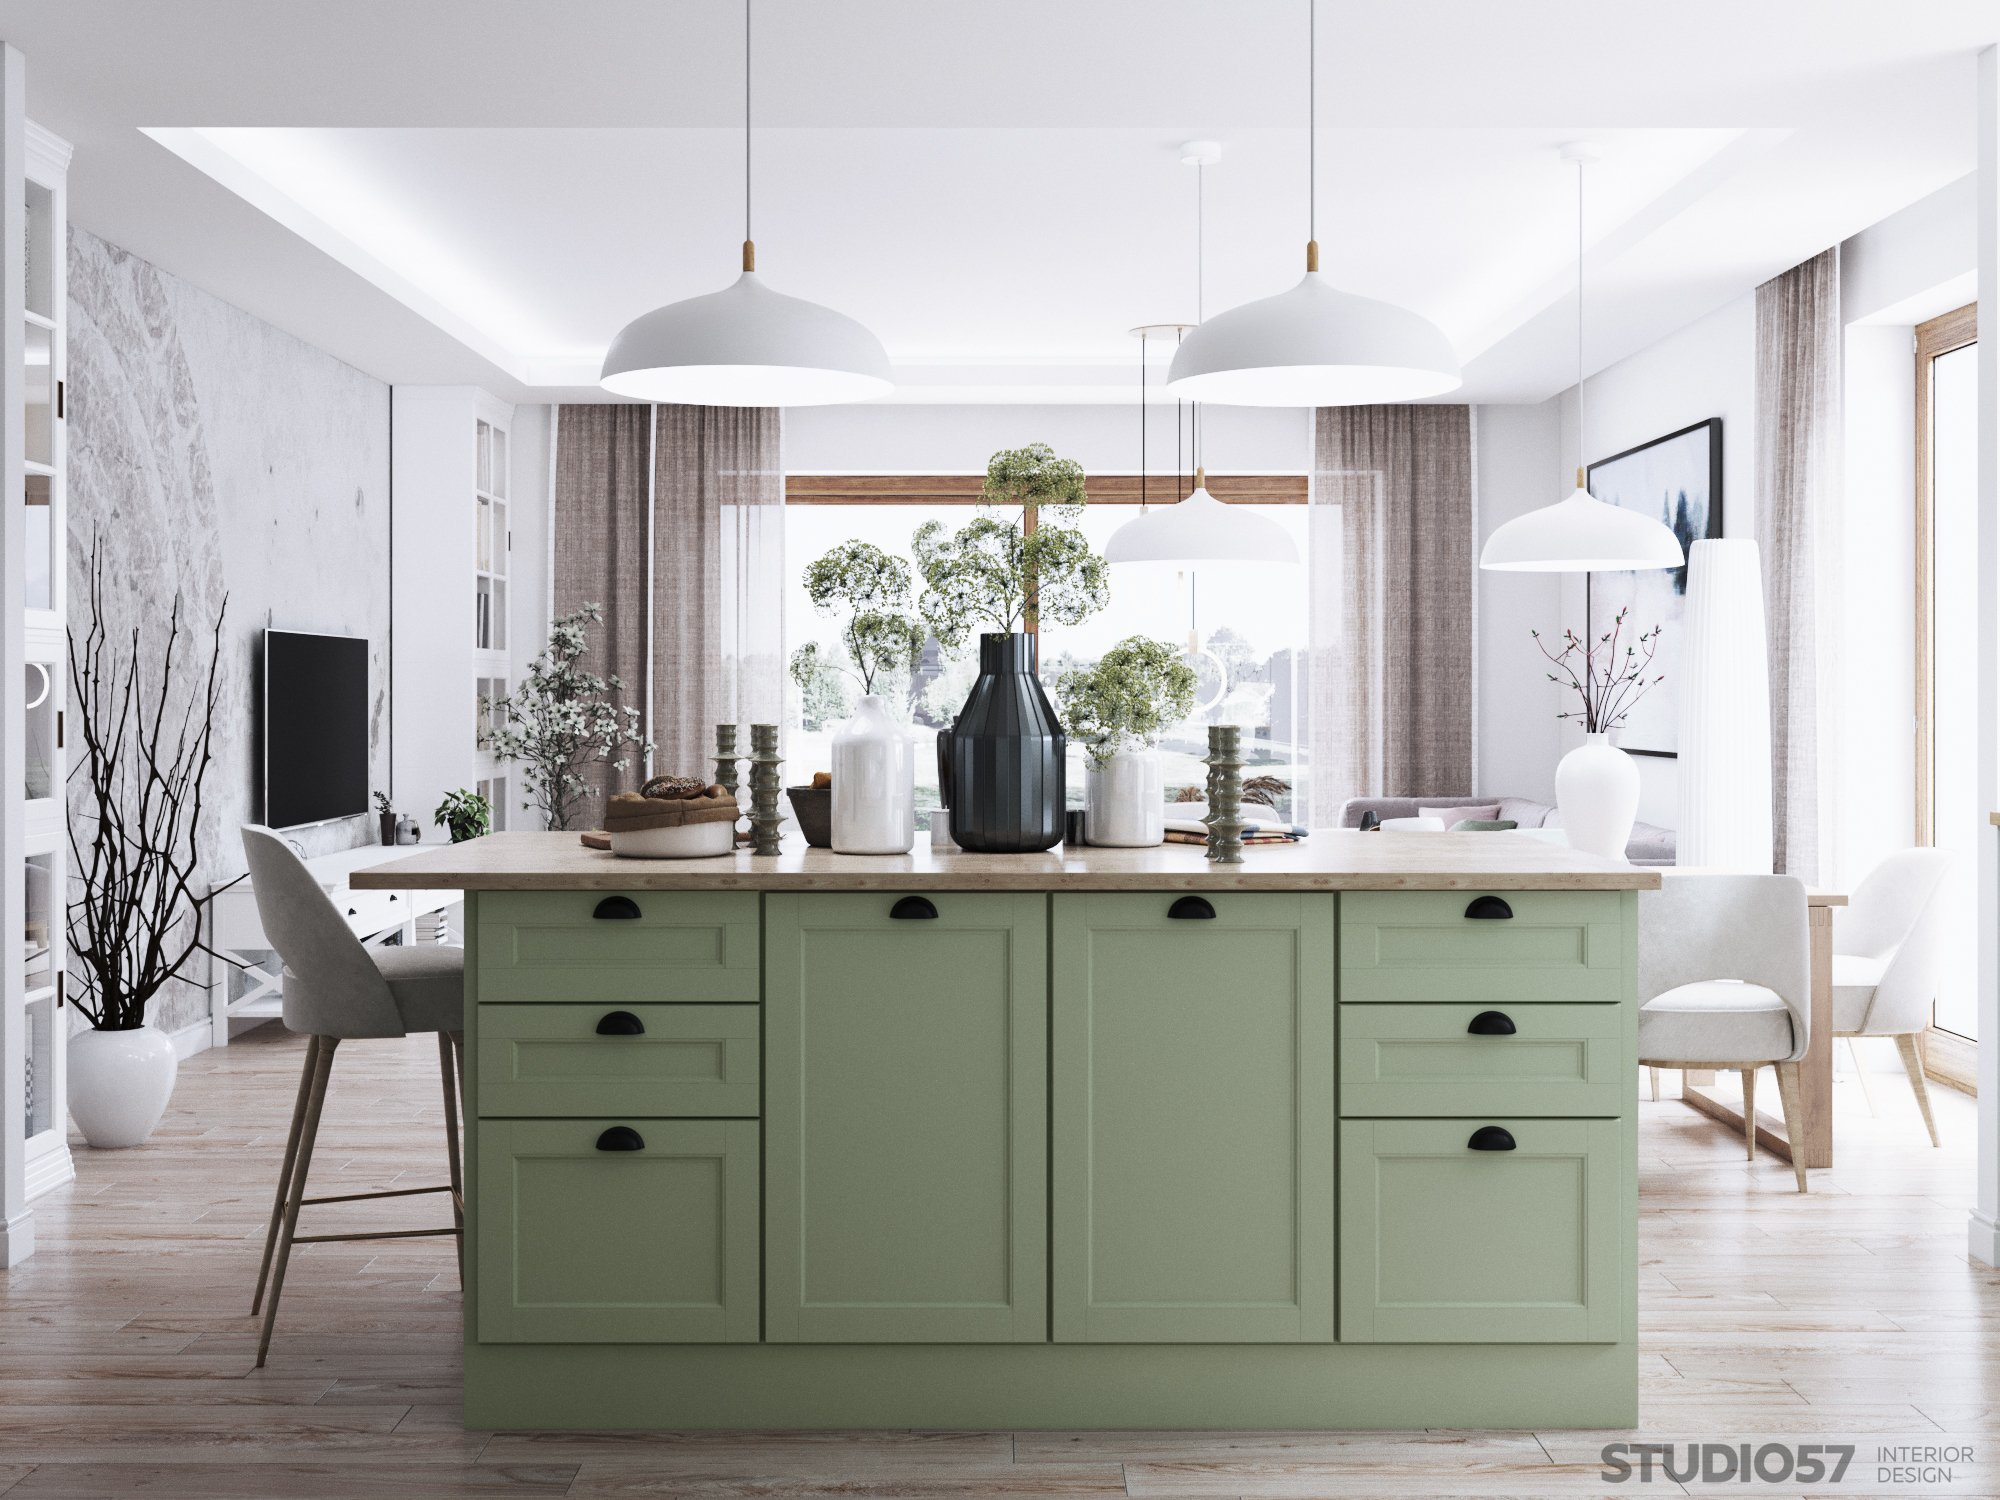 Kitchen and living room design in Contemporary style - Studio57